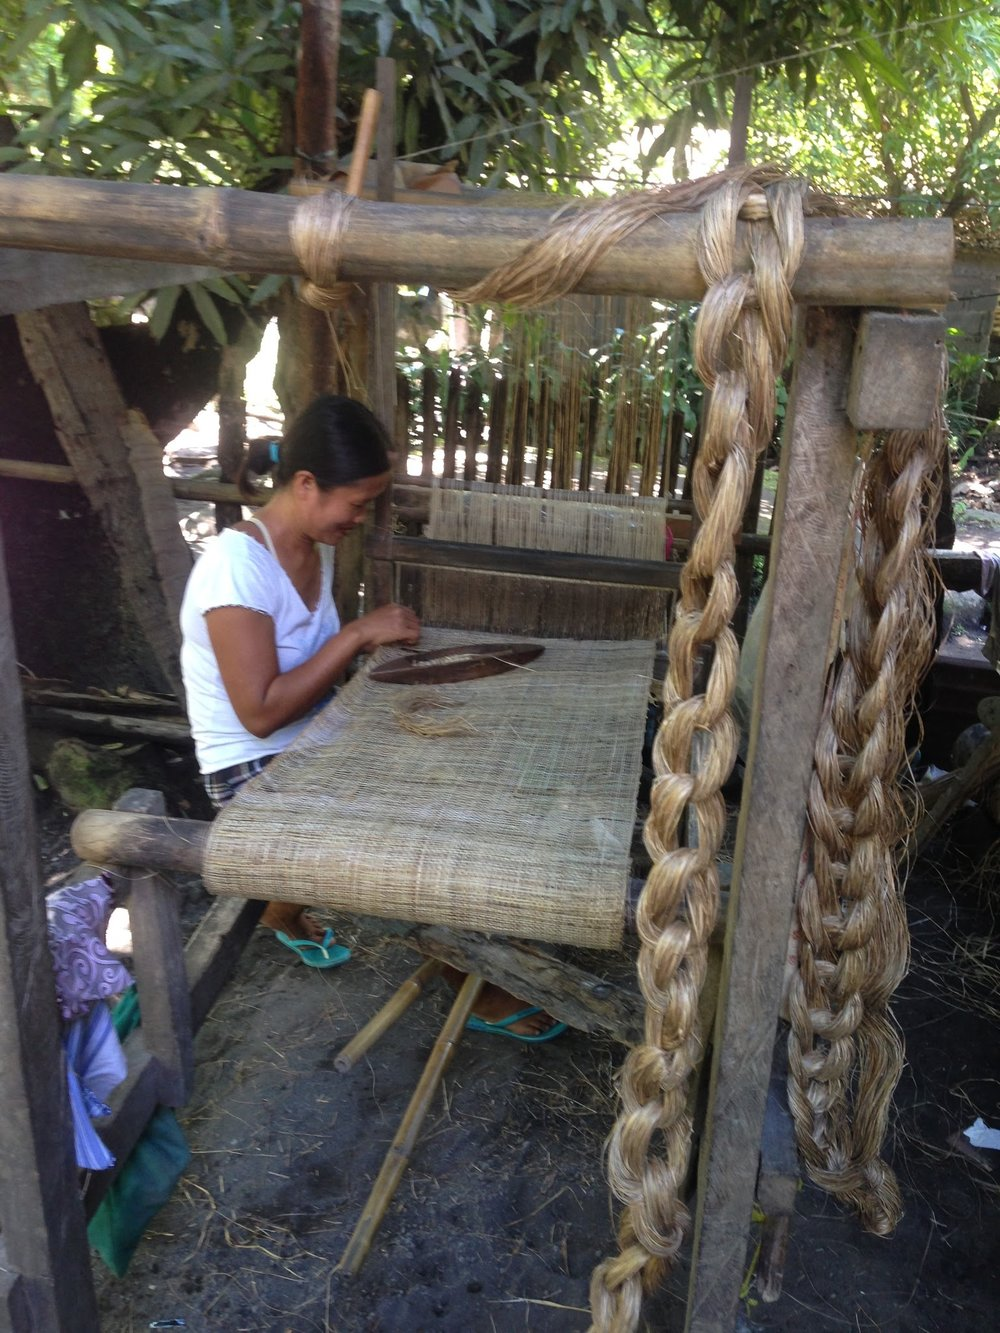 We passed a barangay where there was a lady weaving Abaca outside of her home. So amazing!